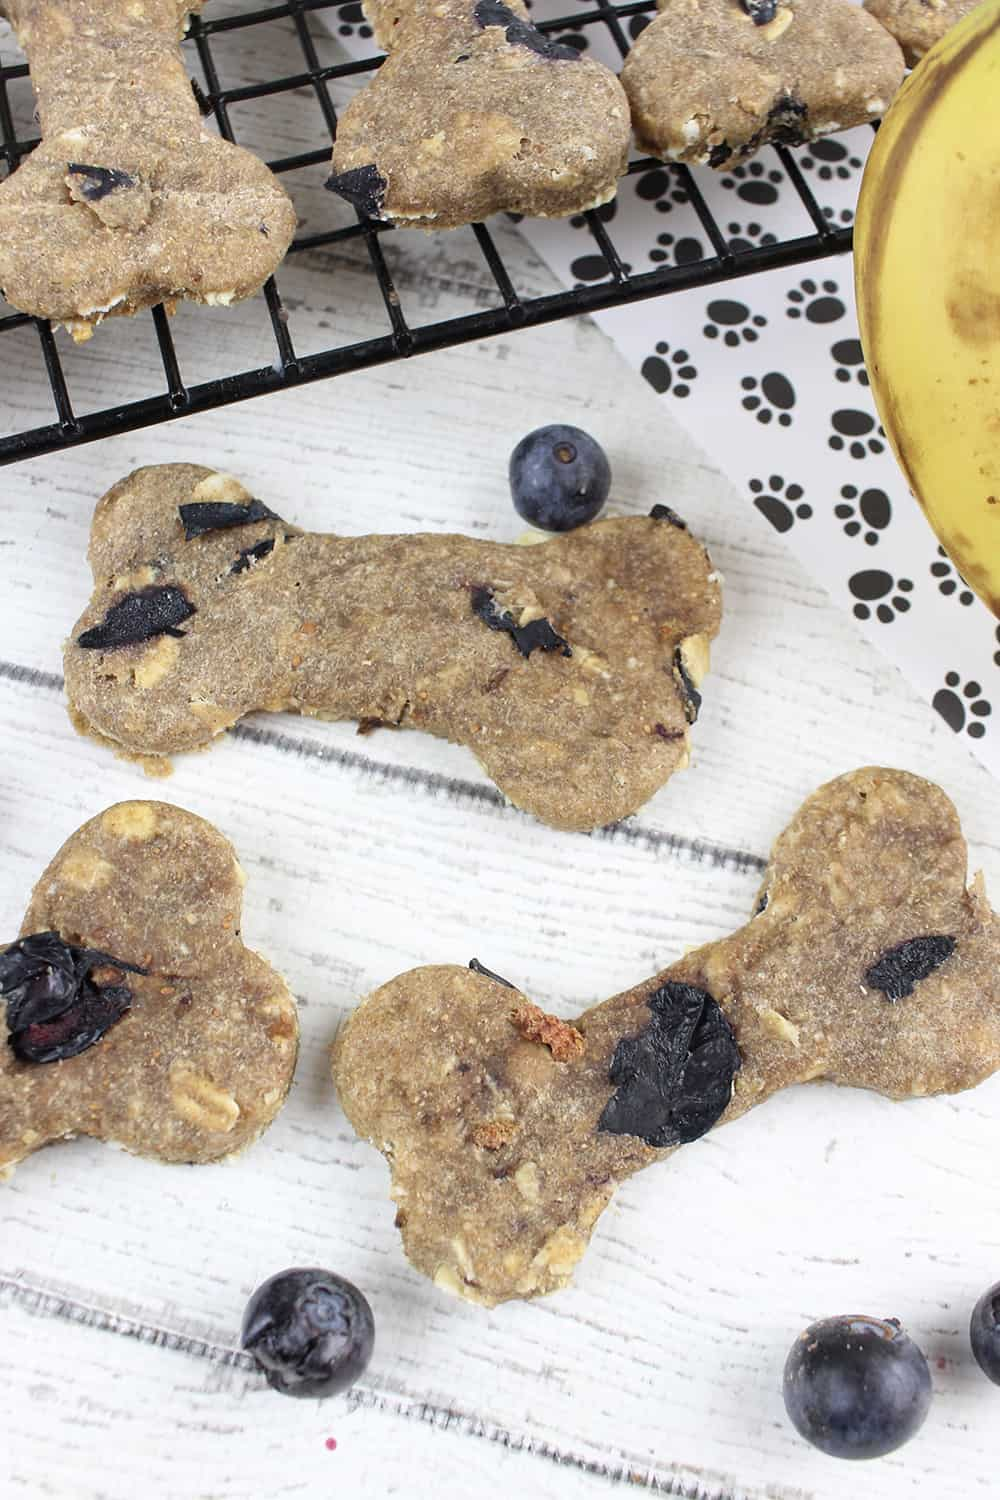 Looking for a simple dog treat recipe? Make your pooch these homemade dog treats with blueberries!